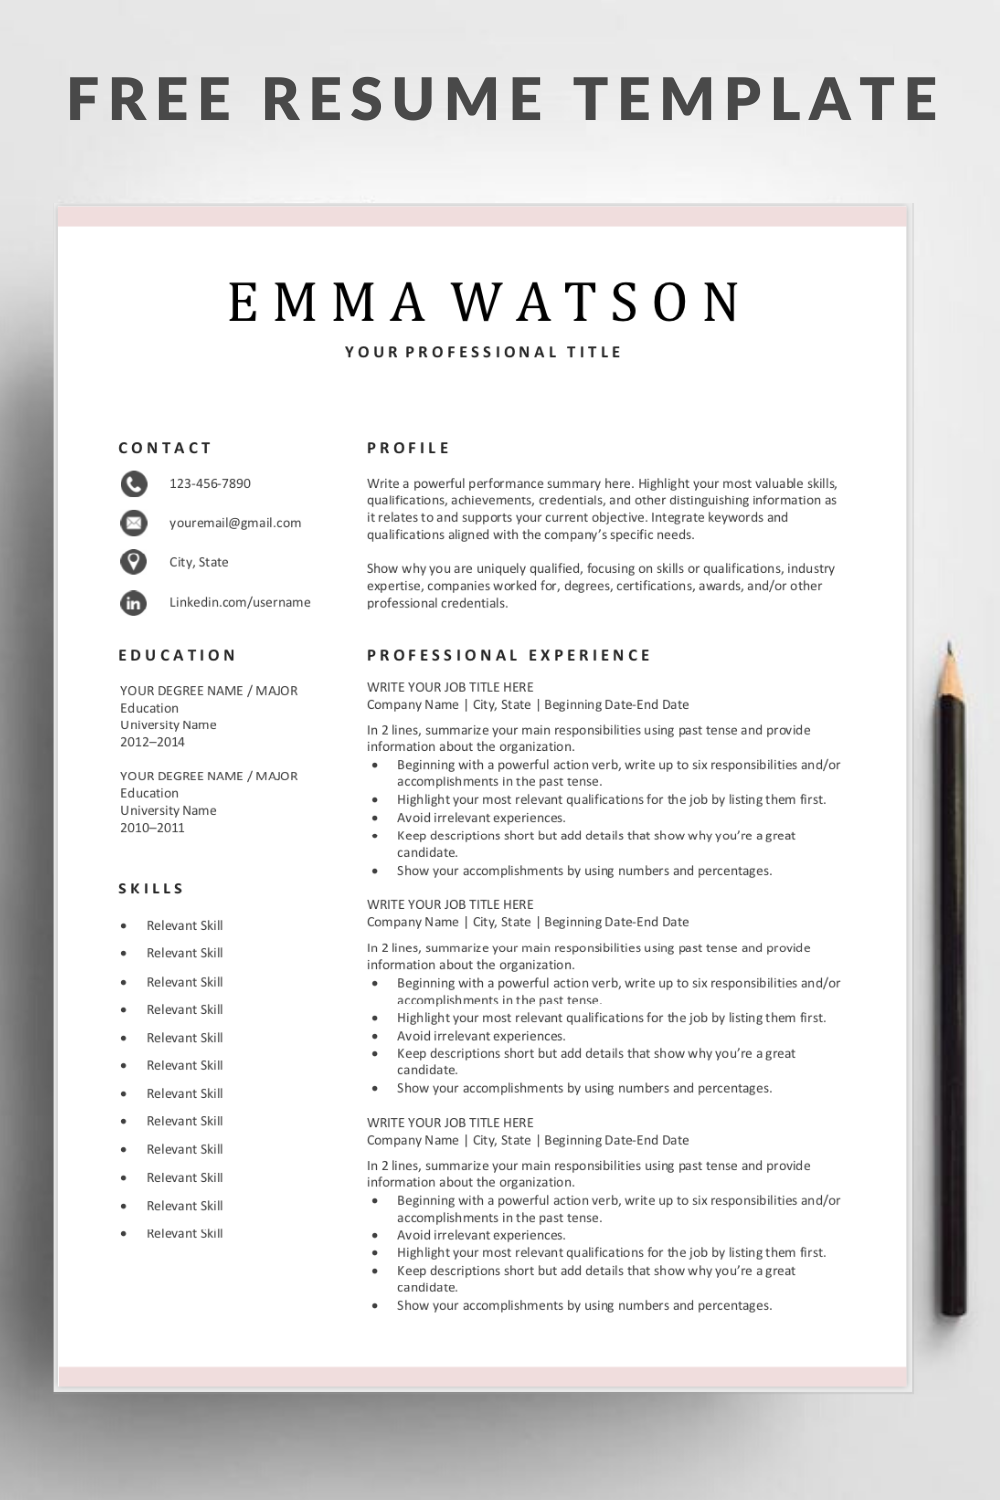 Simple Resume Template Free Of Simple Resume Template Download for Free